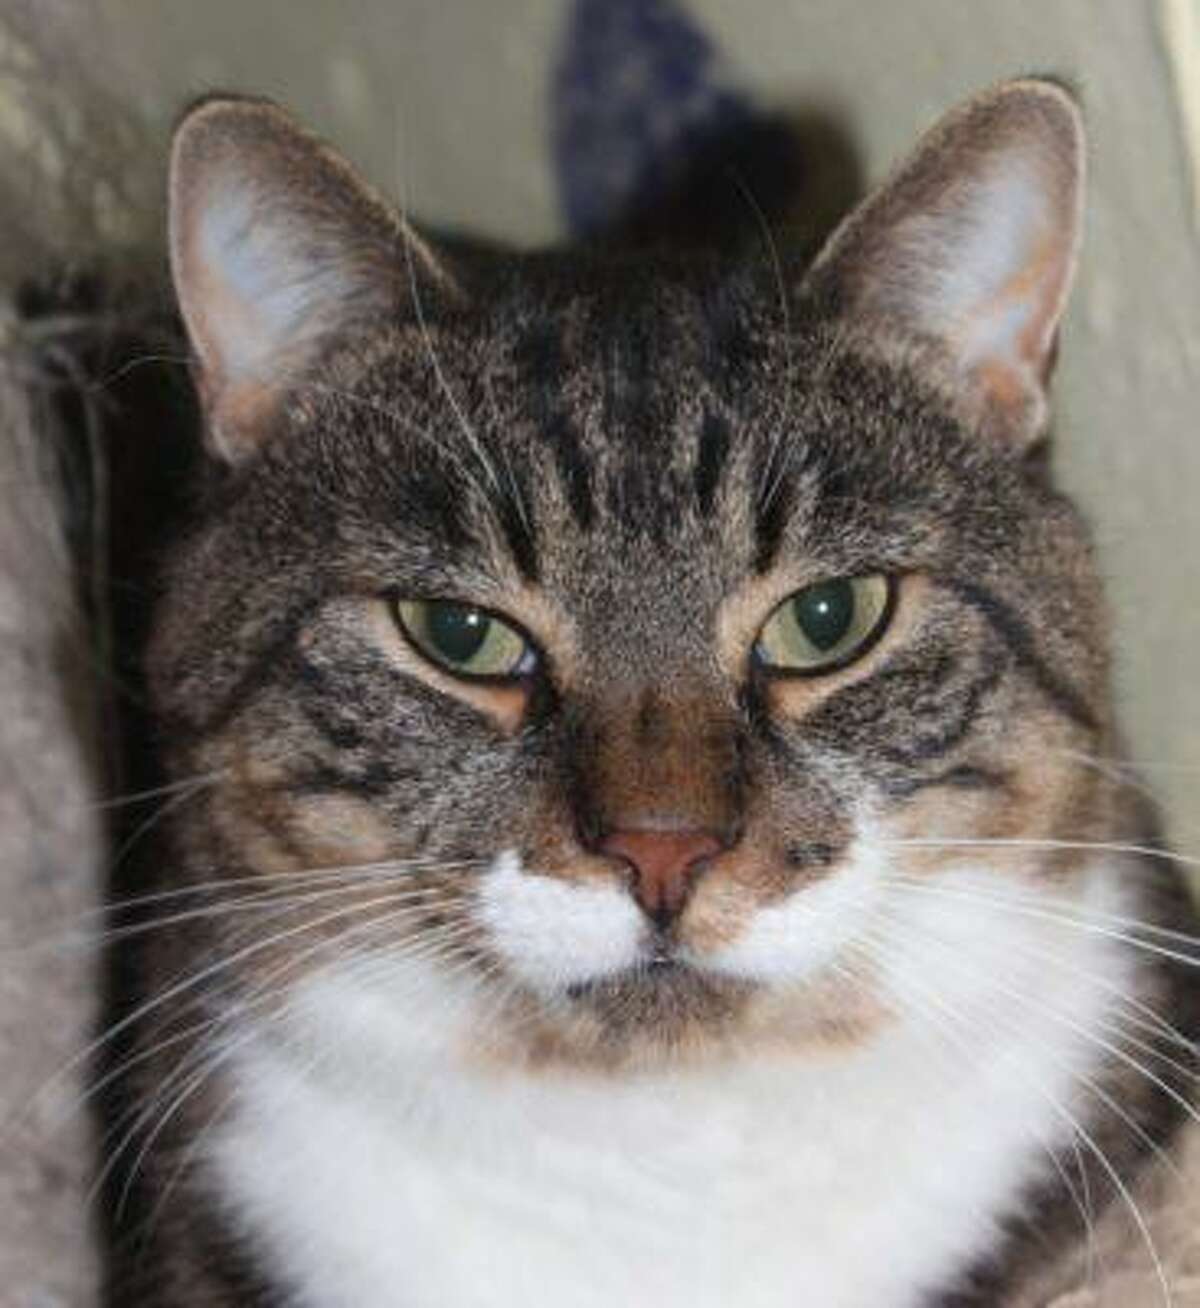 """Milo is a 6-year-old brown tabby who loves petting, scratches and belly rubs. """"I'm very affectionate and loving,"""" he says. """"My dream is that someone will adopt me and build me a catio (it's okay if you can't do this though). I'm FIV+ and I'm not contagious to humans. This is also very difficult for other cats to catch (we'd have to exchange blood). I hope you are my patient person who is willing to just love me for who I am. You must know that I absolutely hate being picked up and will not allow this. So you must feed me treats daily in a carrier or have a vet that will come to your home. I also love my kitty friends so I need to be in a home with another friendly kitty. Visit www.CatTalesCT.org/cats/Milo-2, call 860-344-9043 or email info@CatTalesCT.org. Watch our TV commercial: https://youtu.be/Y1MECIS4mIc"""